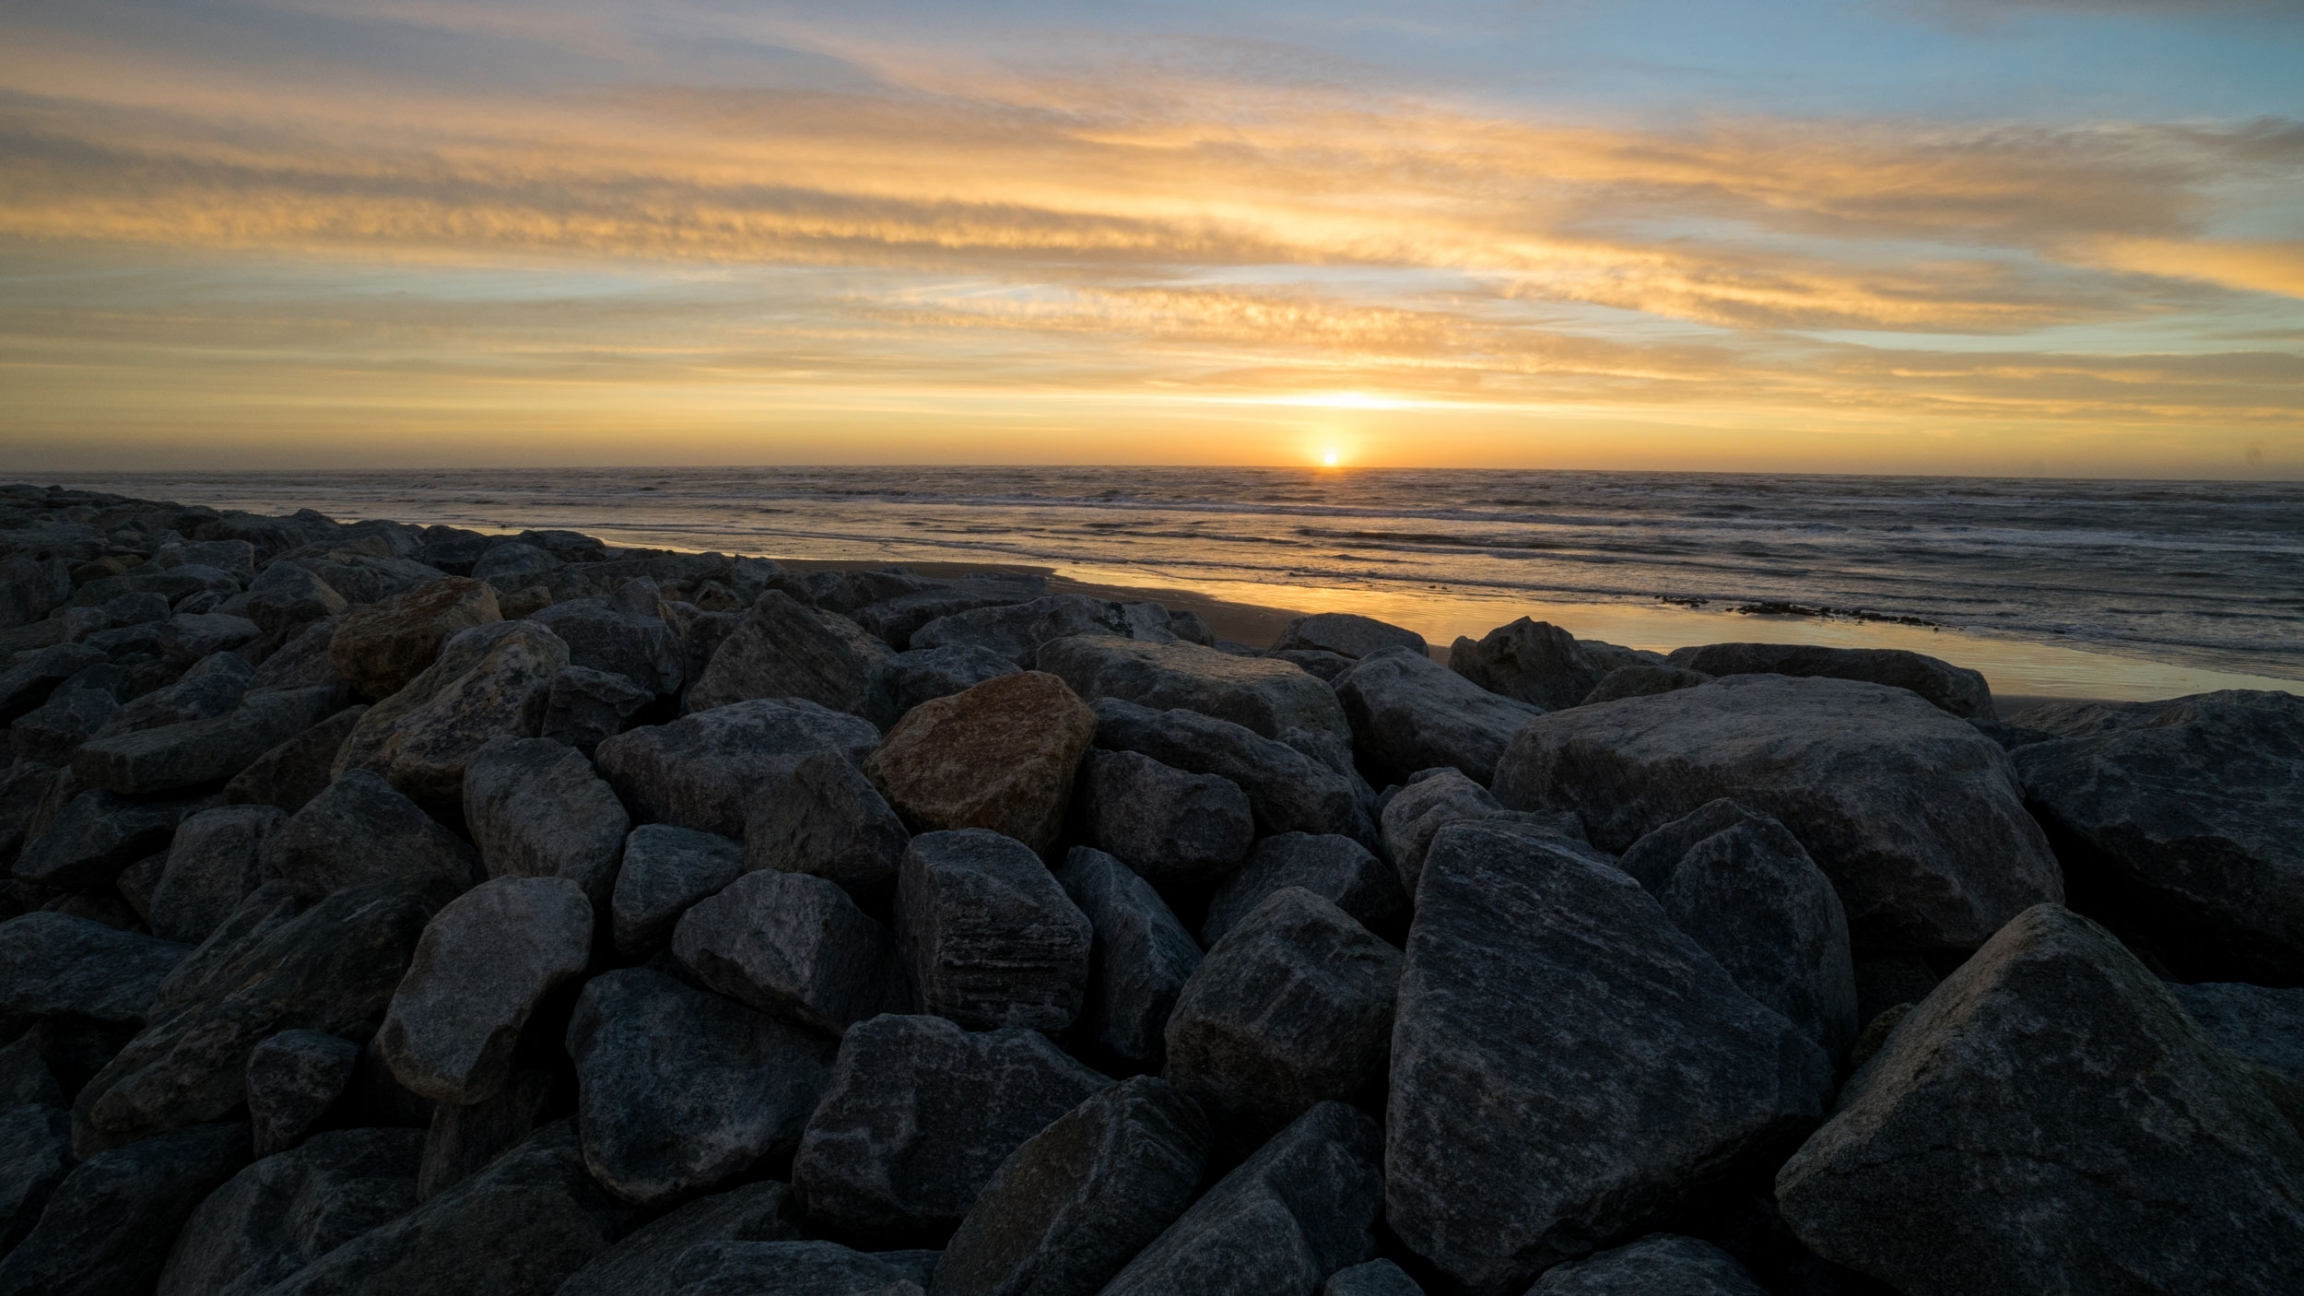 The sun sets into the ocean along a rocky seawall